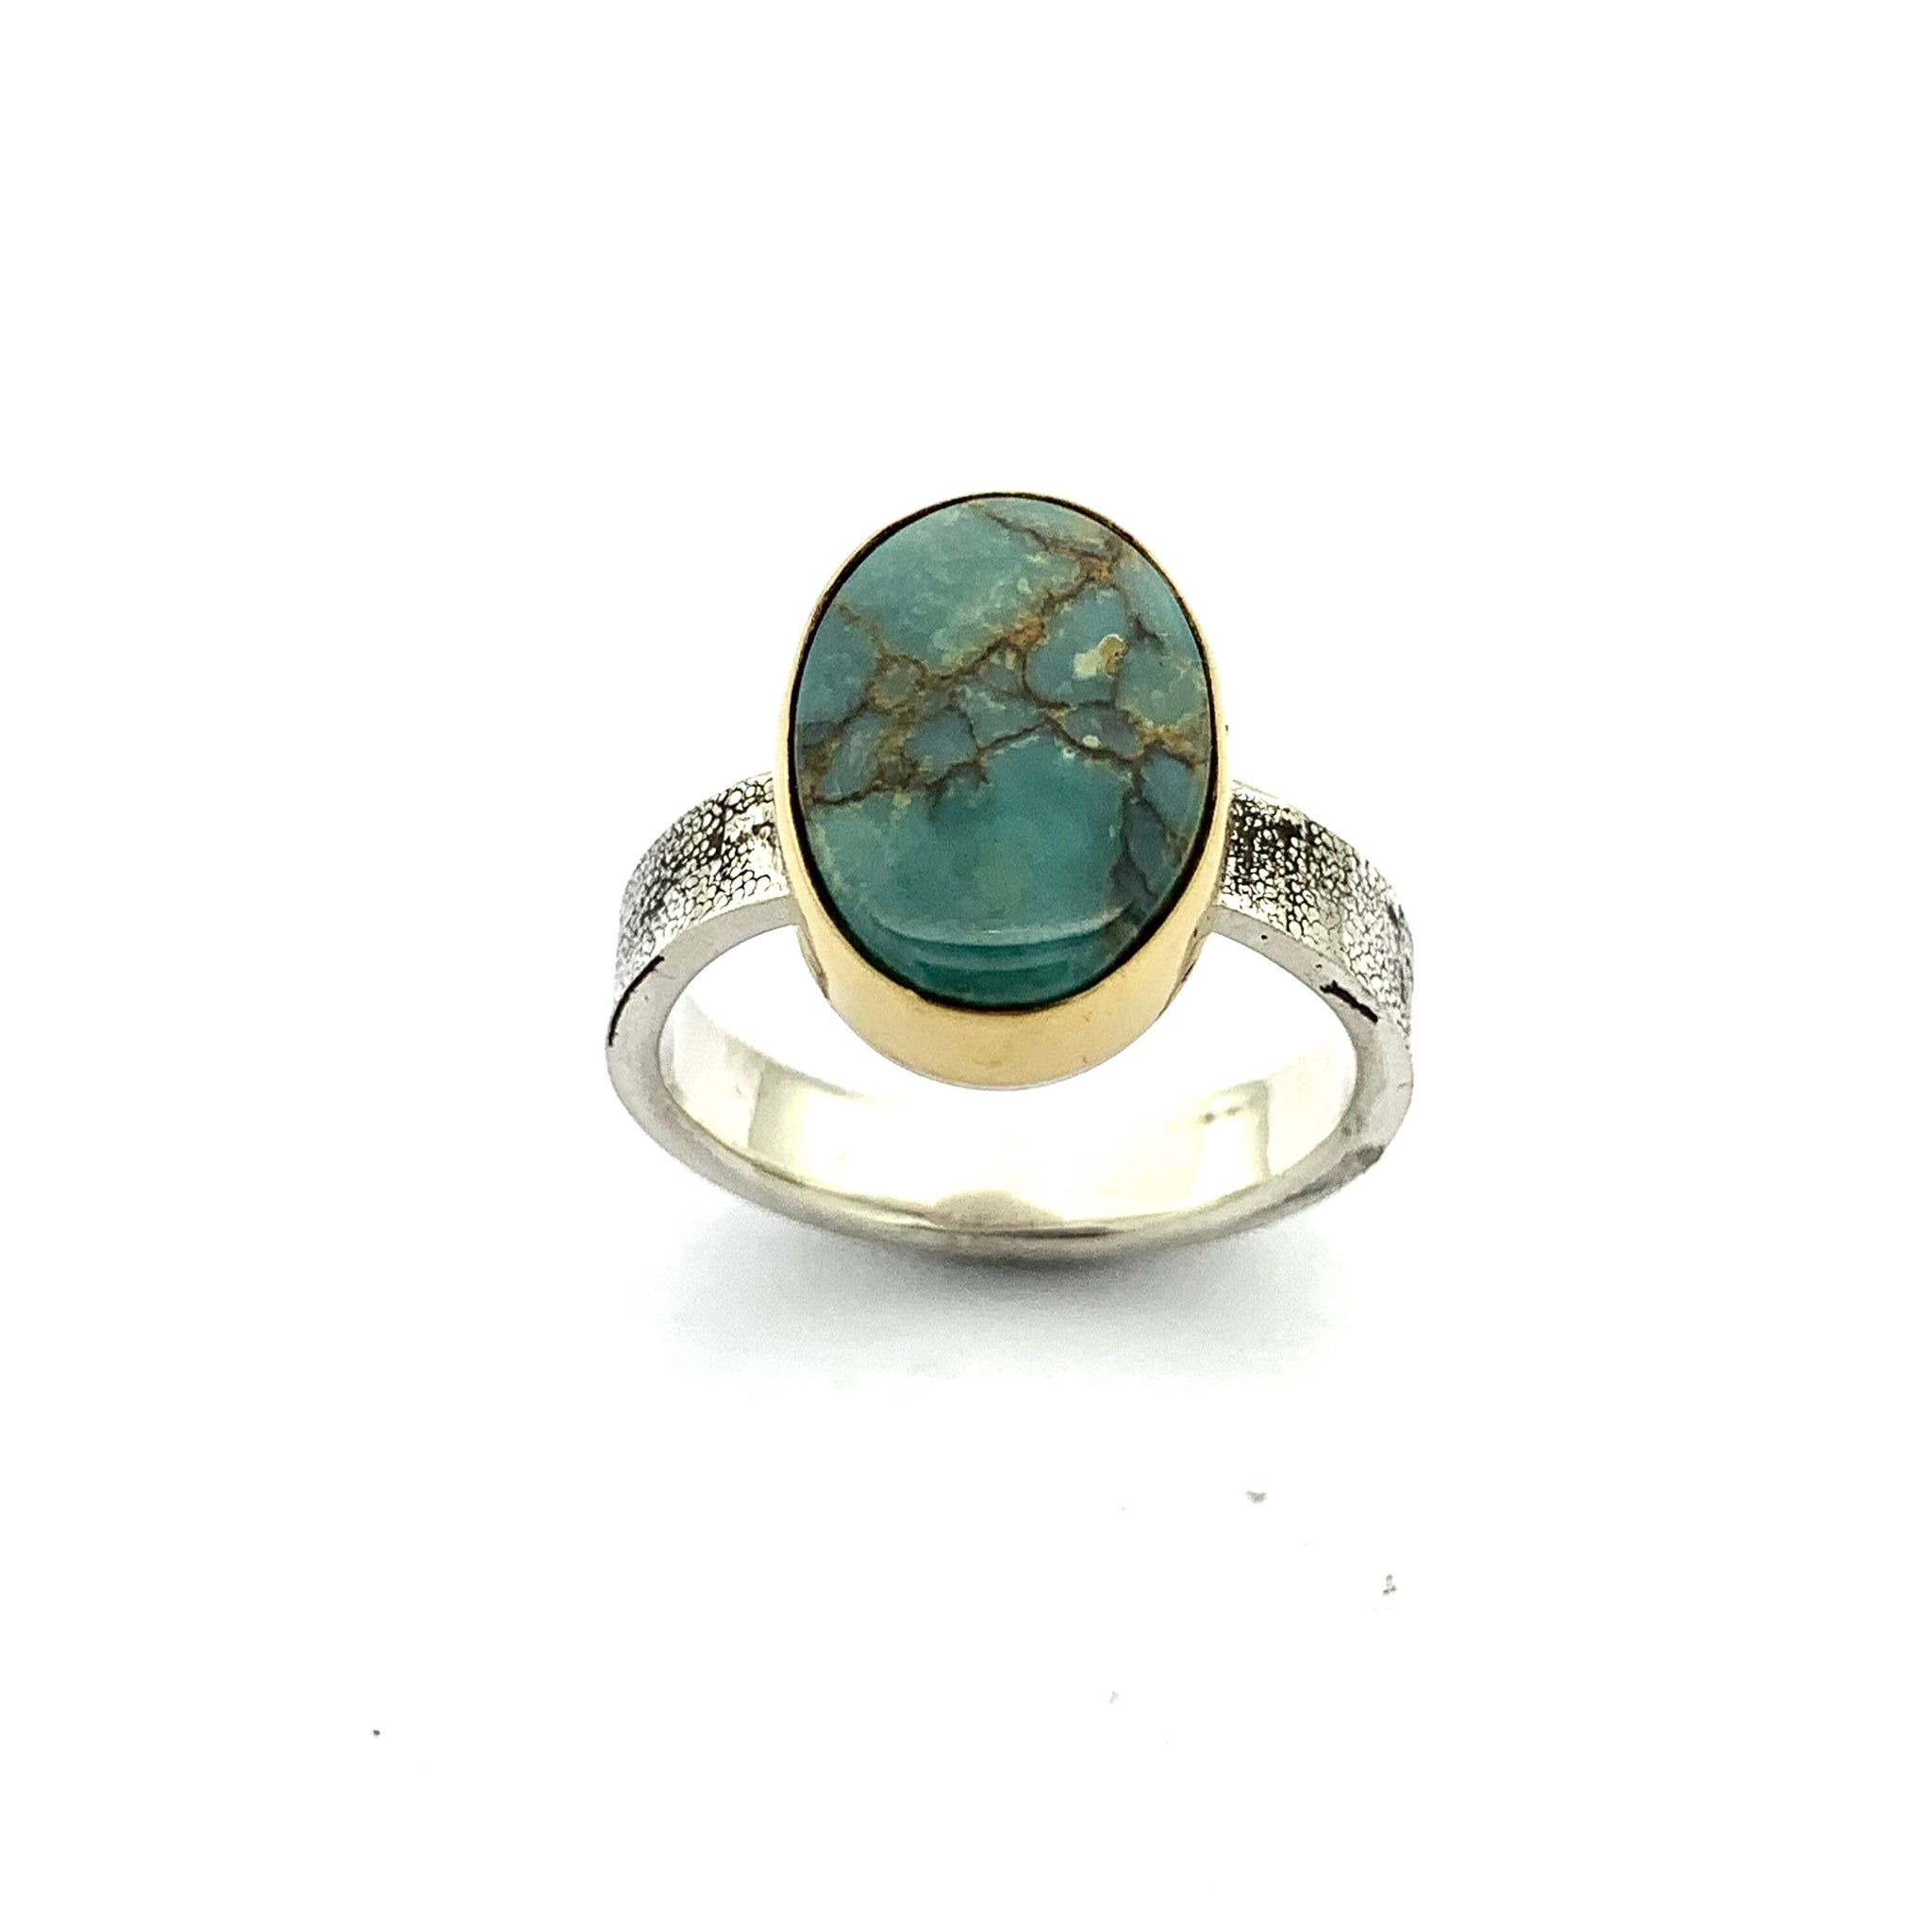 Seven Dwarfs and gold ring, 7D ring with gold setting, Variscite with gold and silver band, turquoise statement rings, Turquoise womens ring